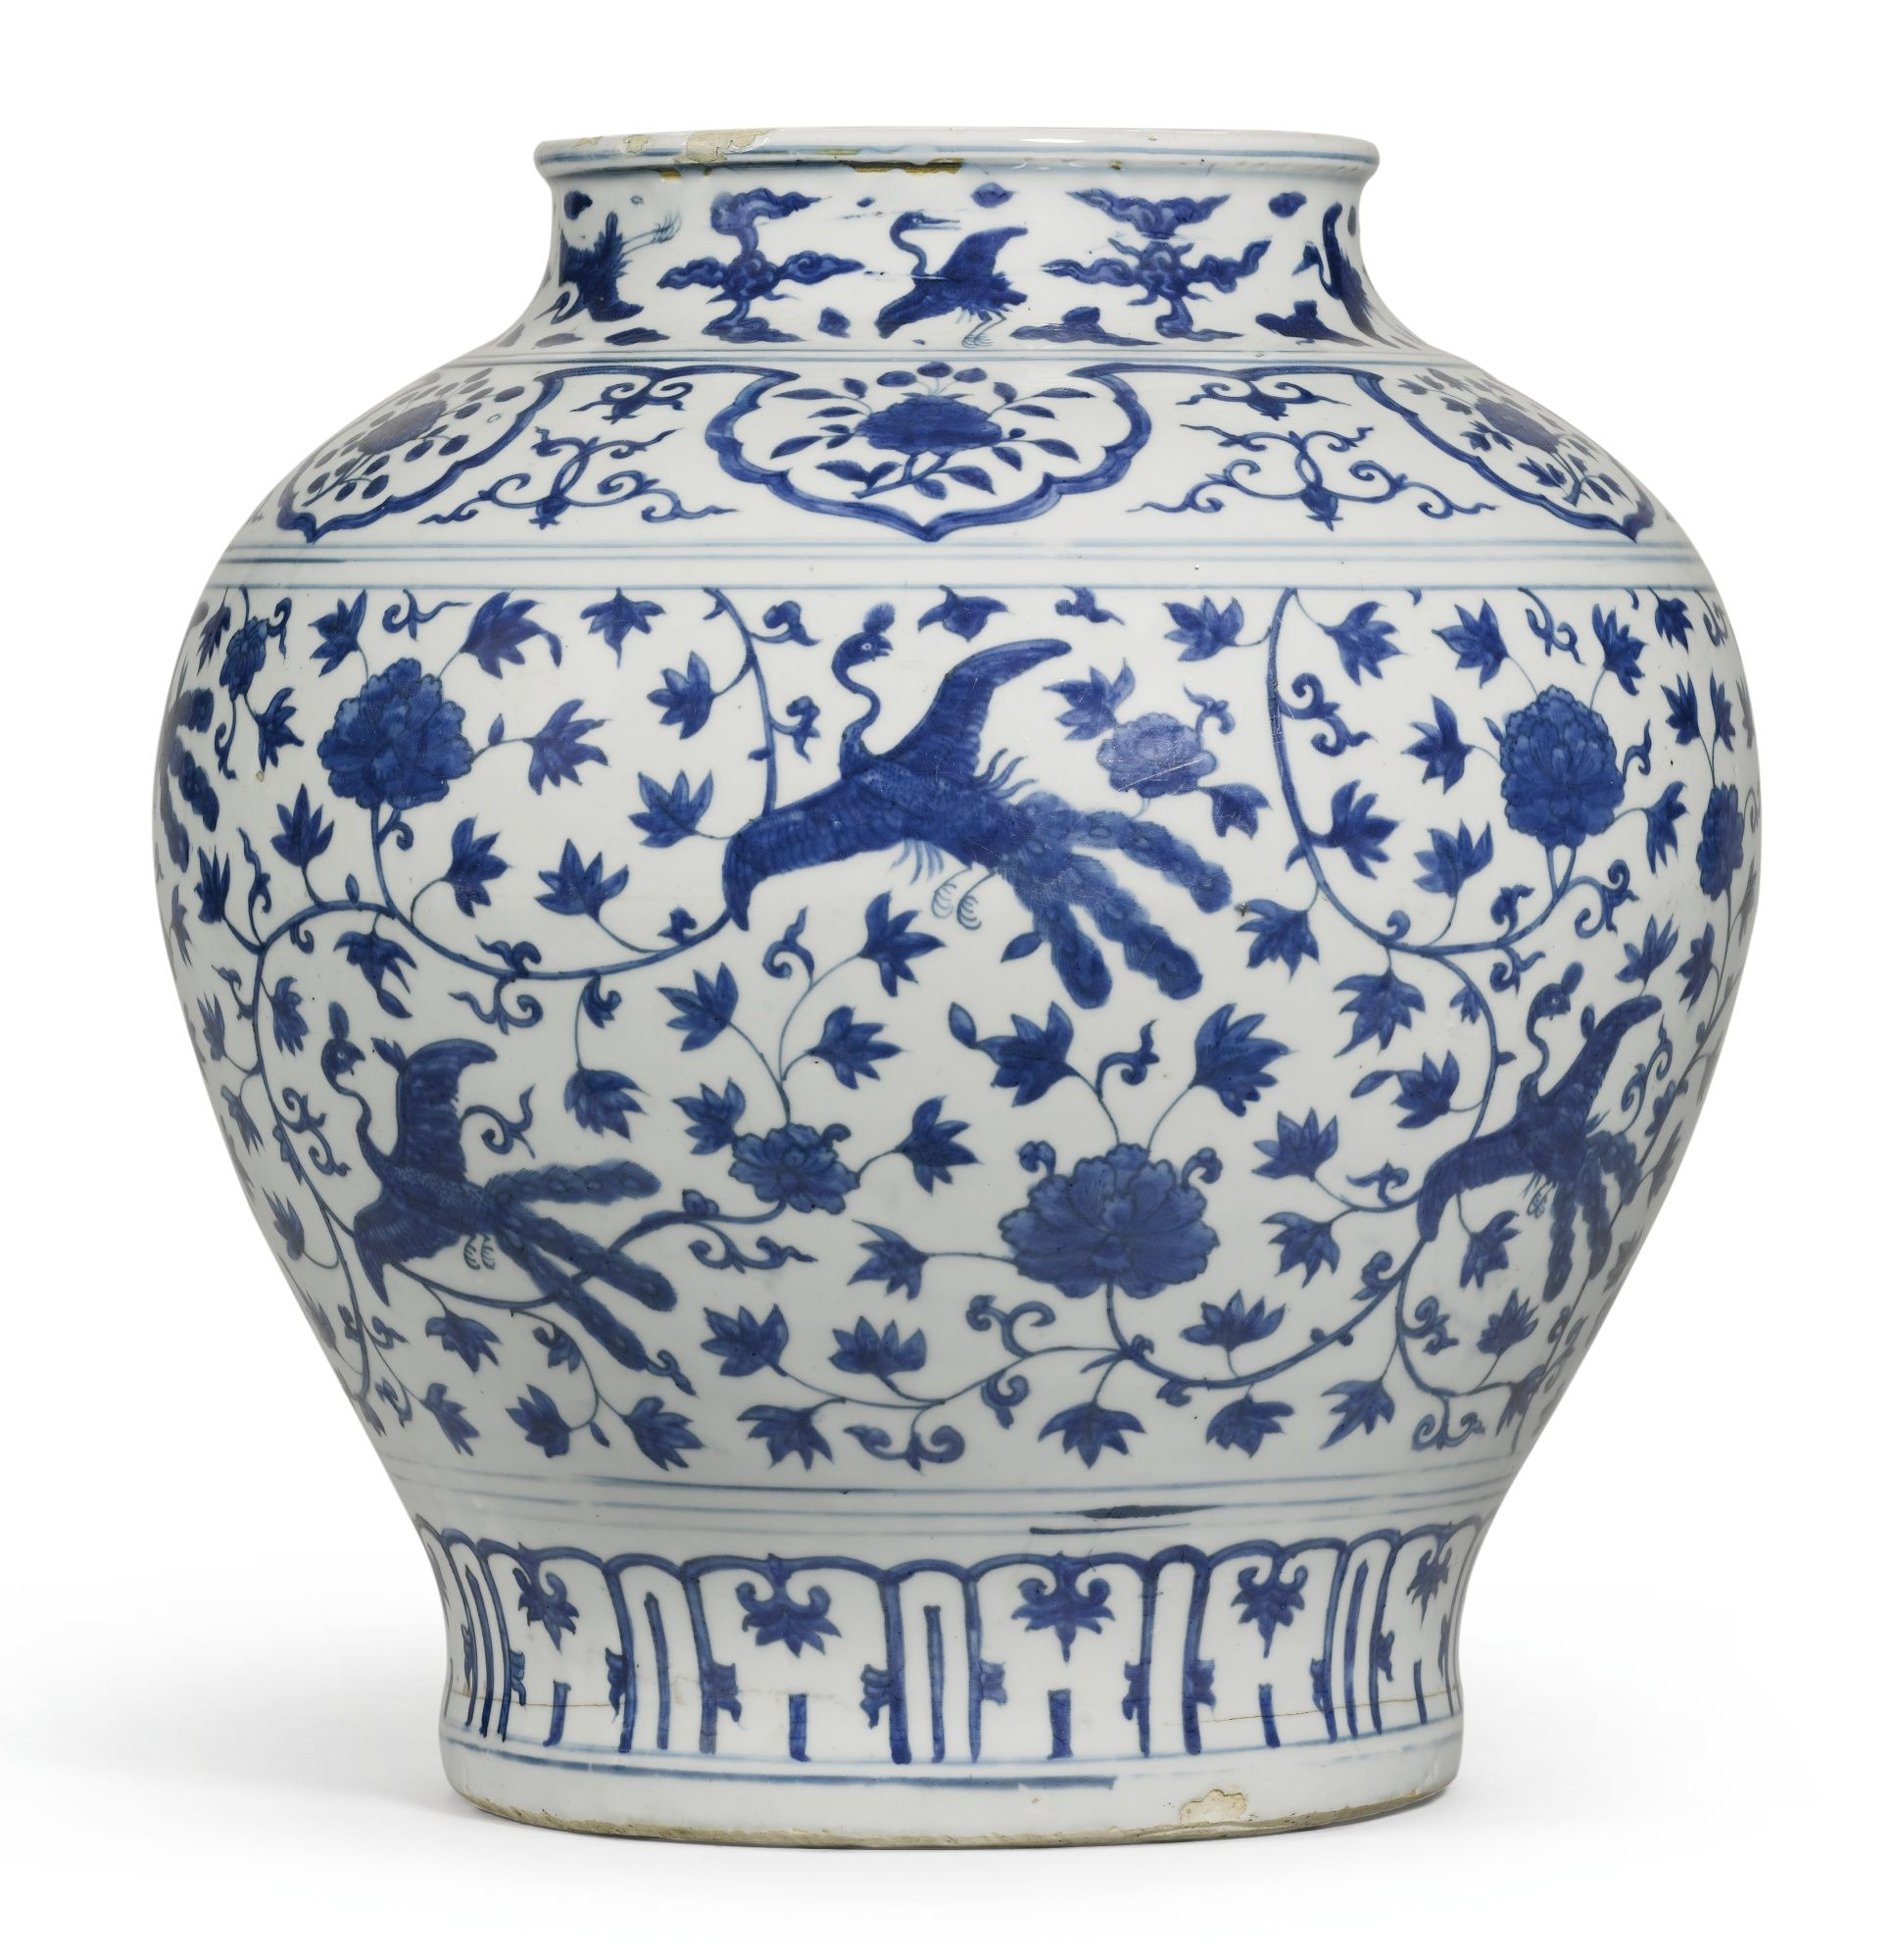 A blue and white lotus and peacock vase ming dynasty jiajing a blue and white lotus and peacock vase ming dynasty jiajing period reviewsmspy